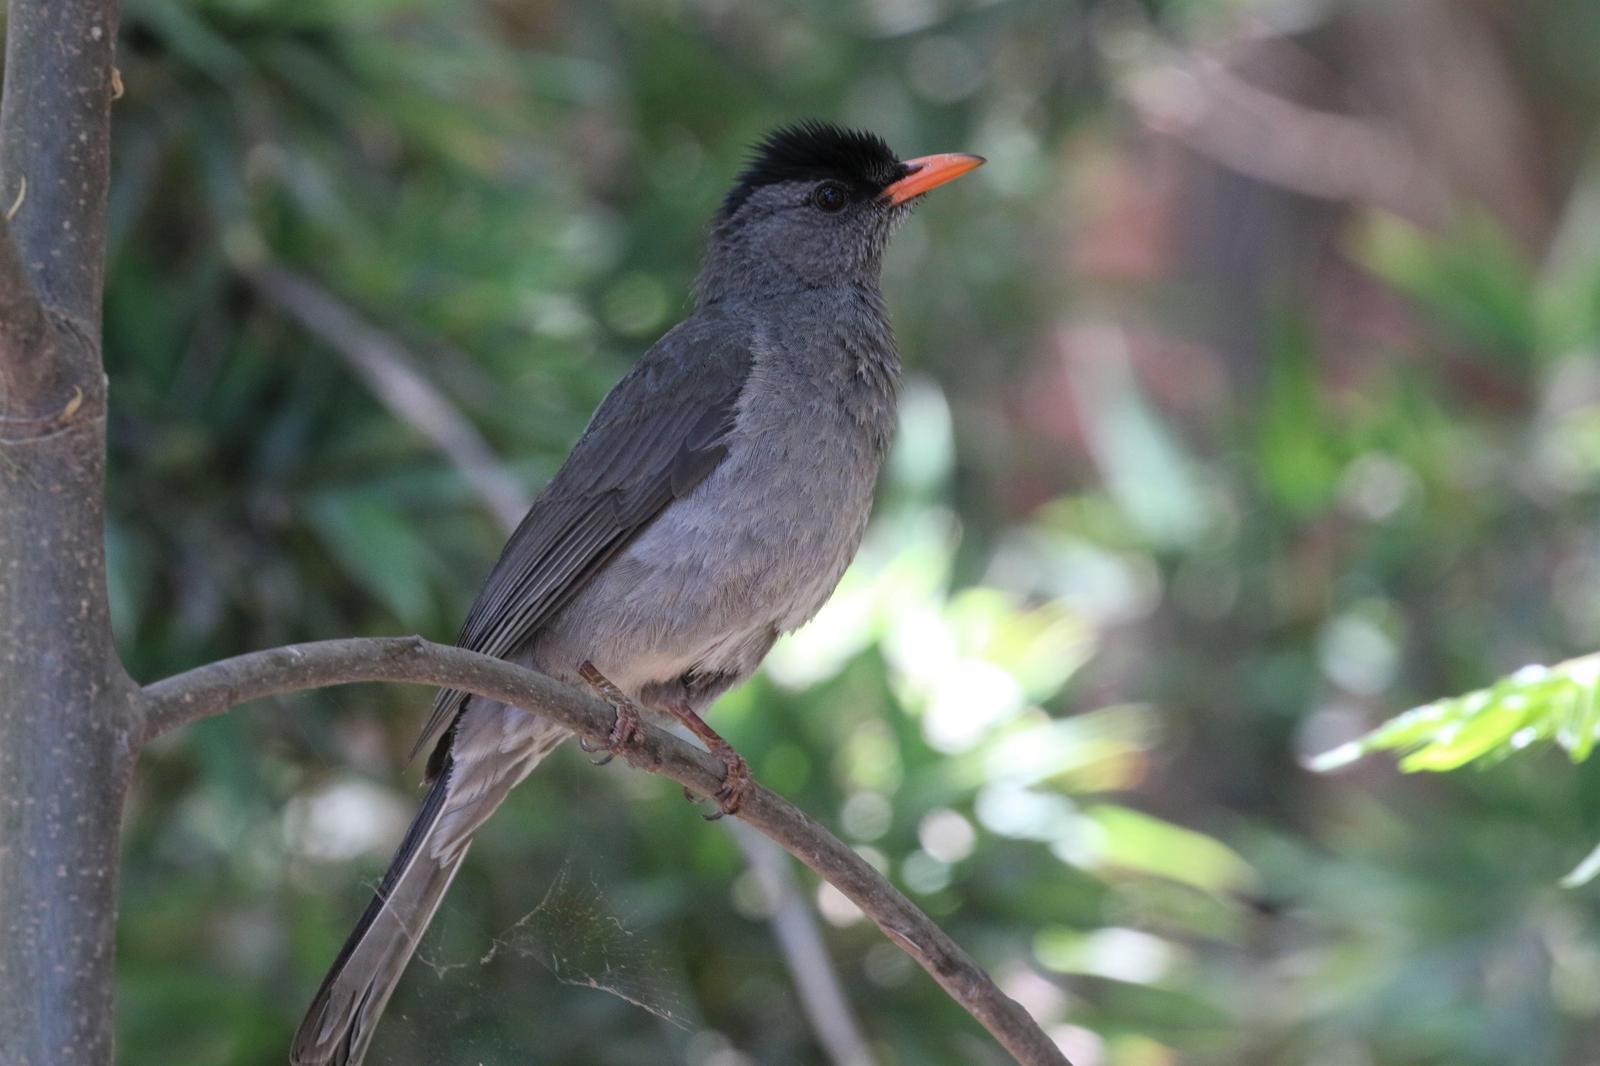 Madagascar Bulbul Photo by Richard Jeffers